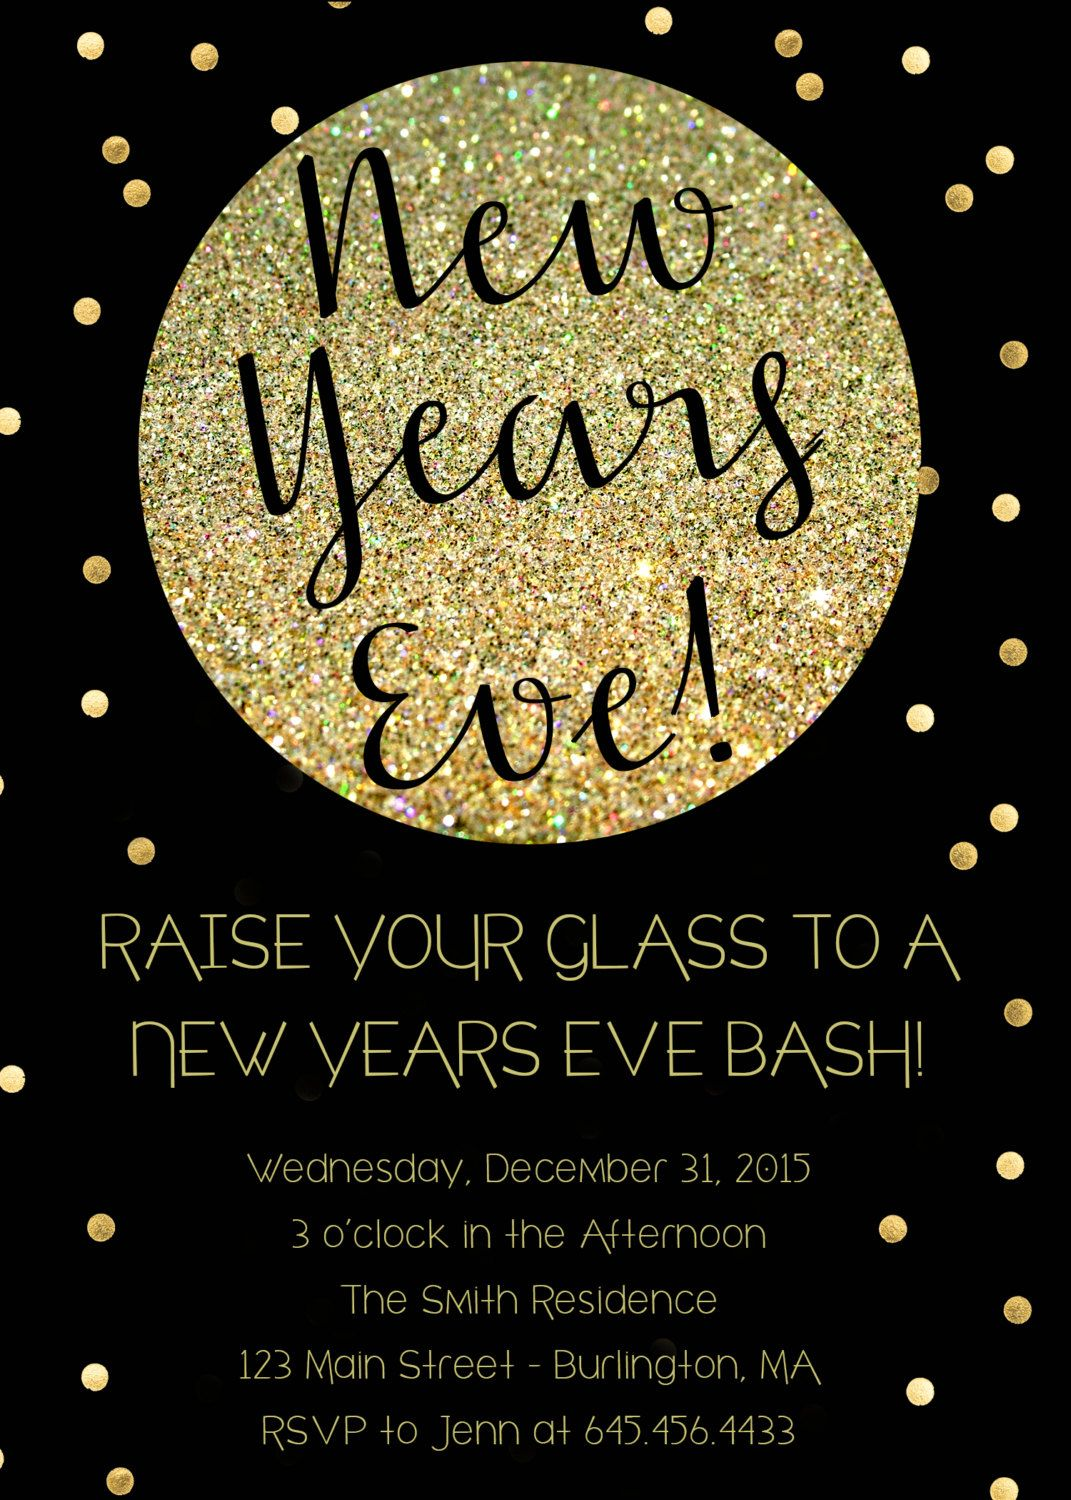 new years eve party invitation in black and gold glitter printable by pixelperfectinvites on etsy